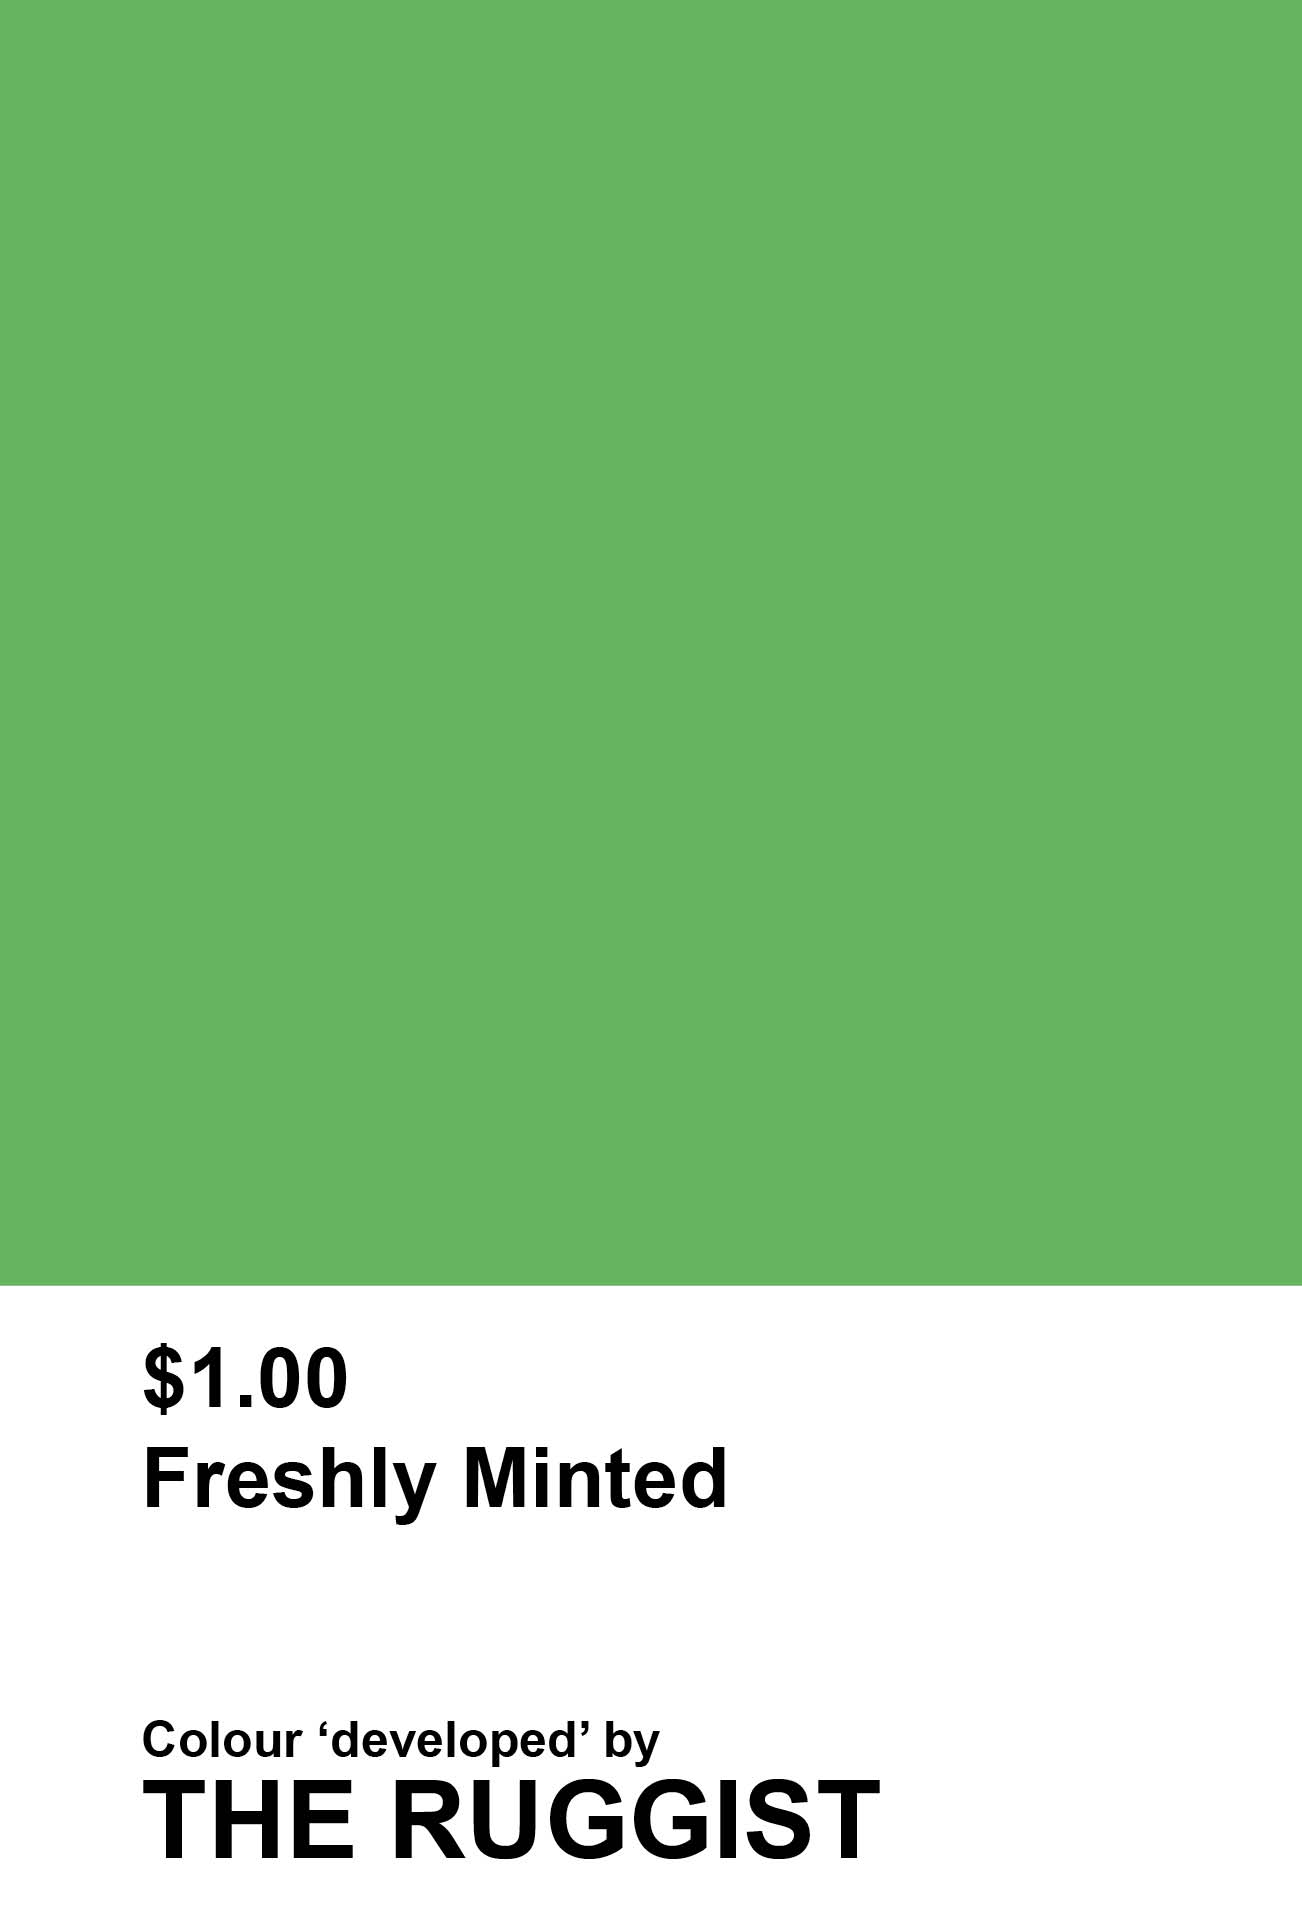 'Freshly Minted' colour reference as 'developed' by The Ruggist. | Image by The Ruggist.